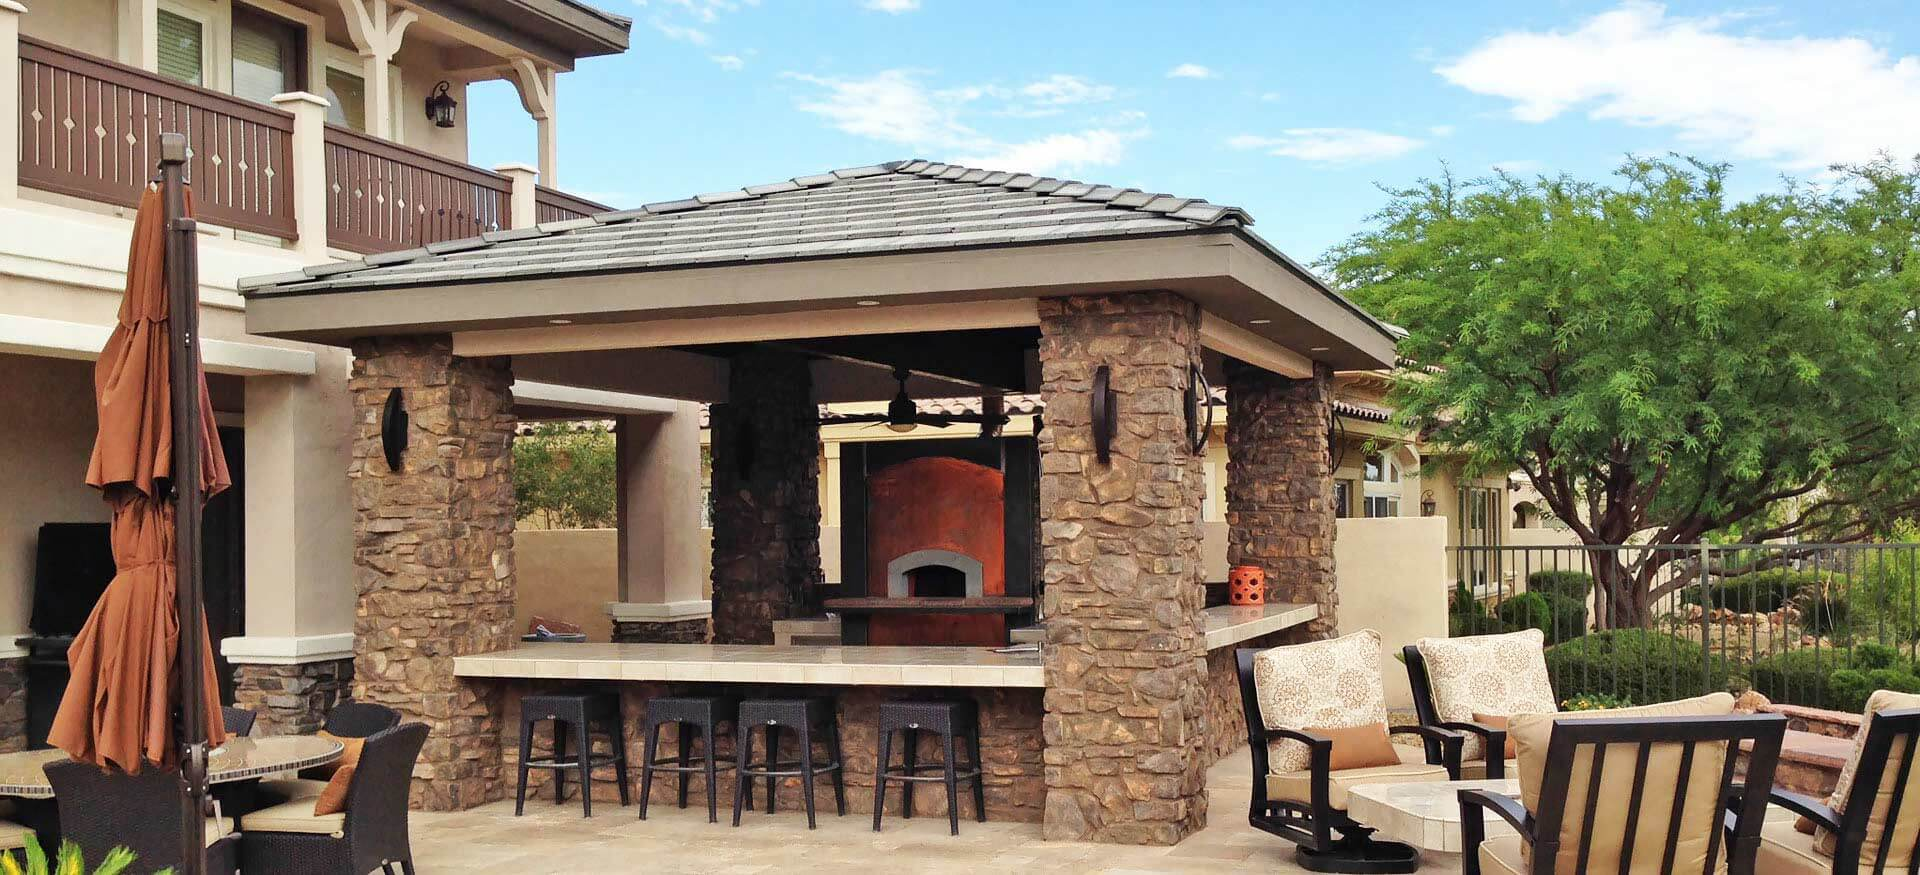 bar-pizza-oven